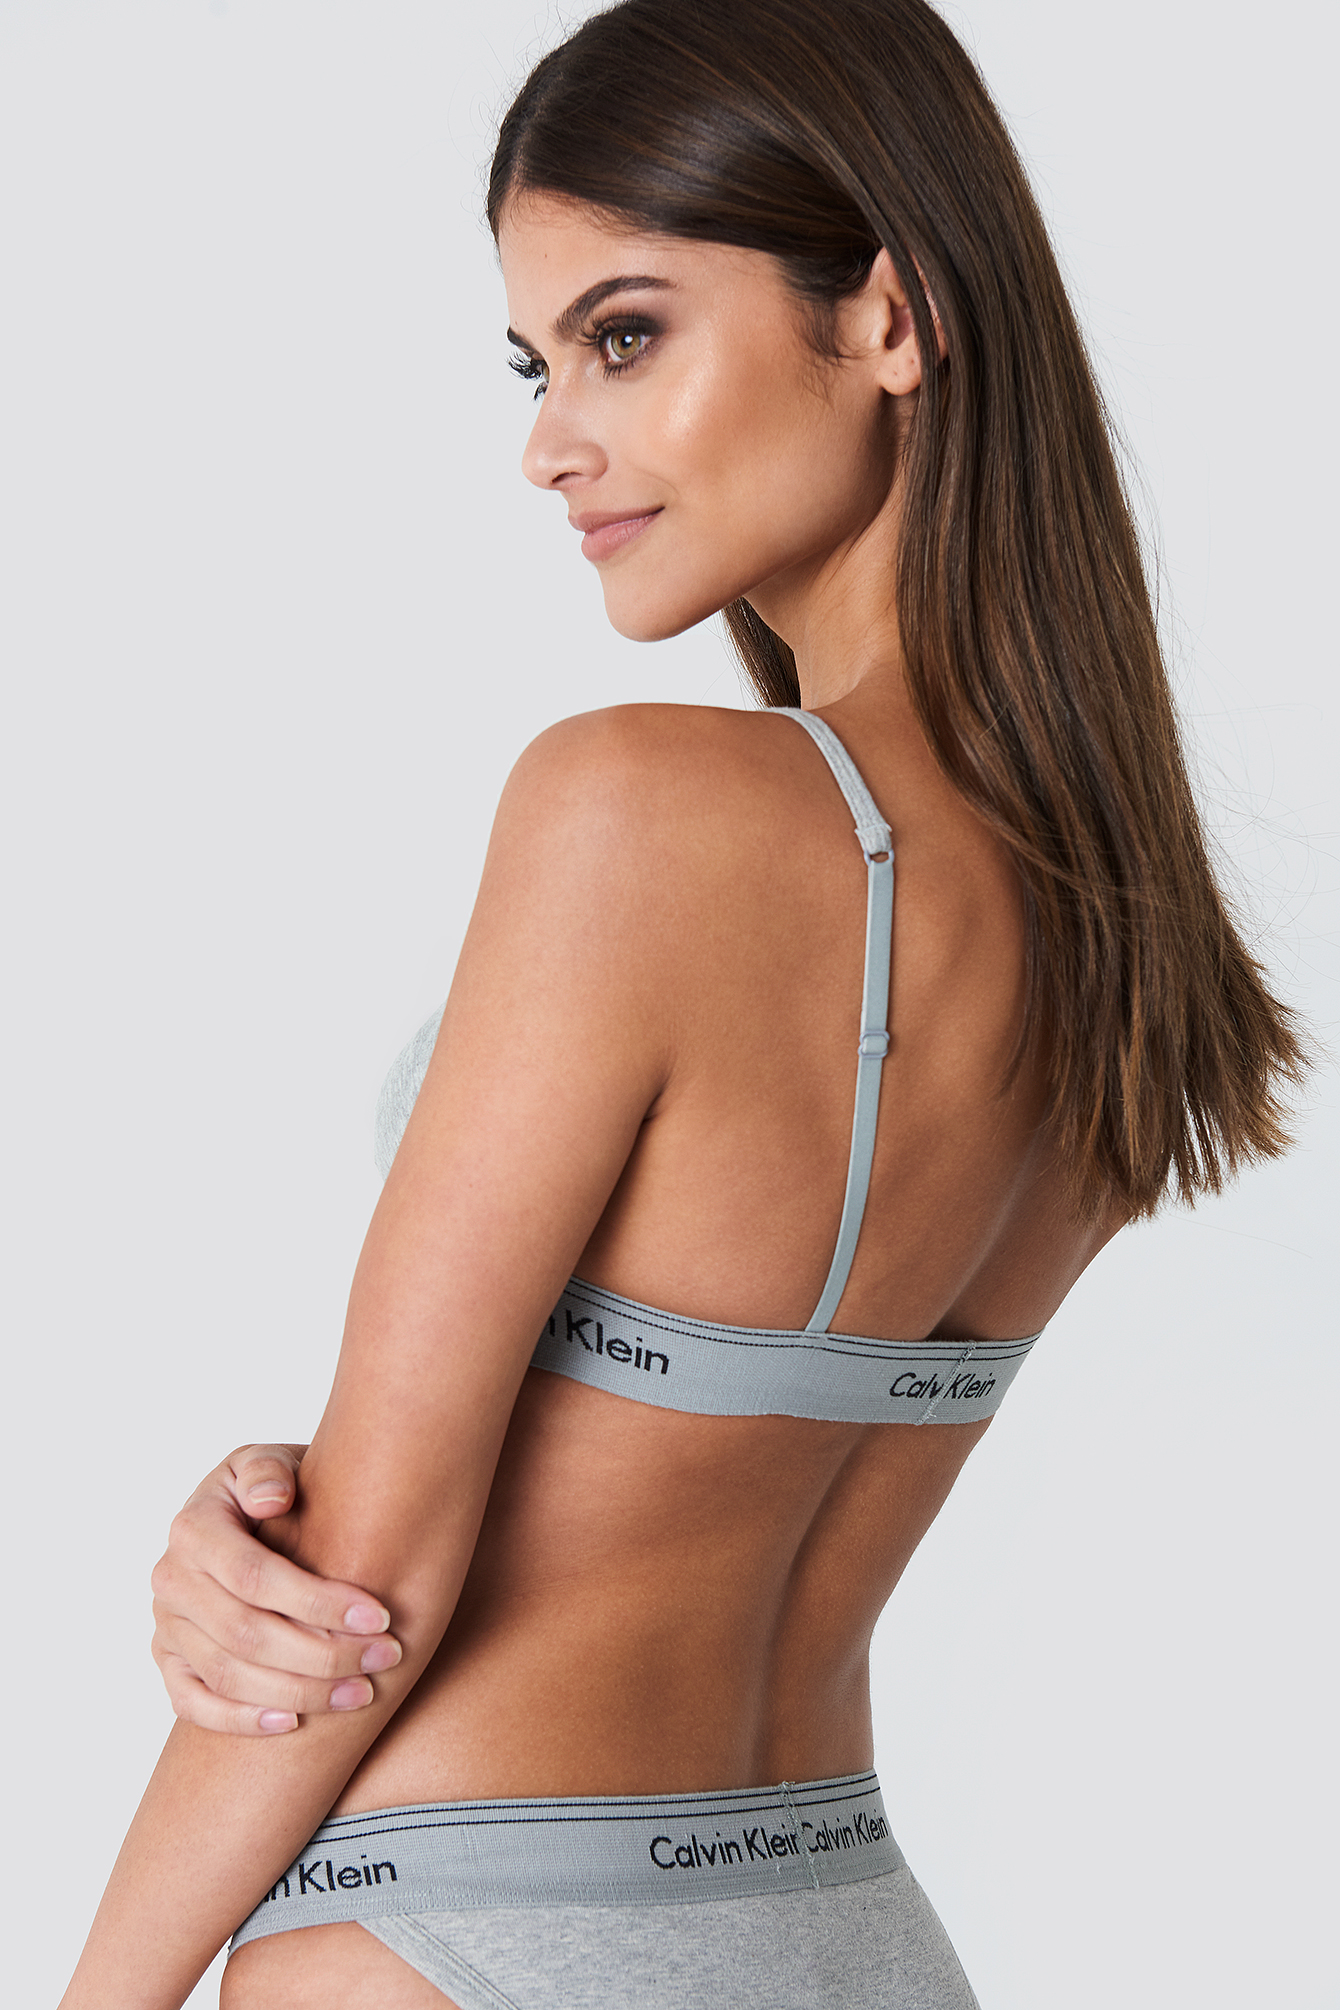 Calvin Klein Unlined Triangle Bra - Grey